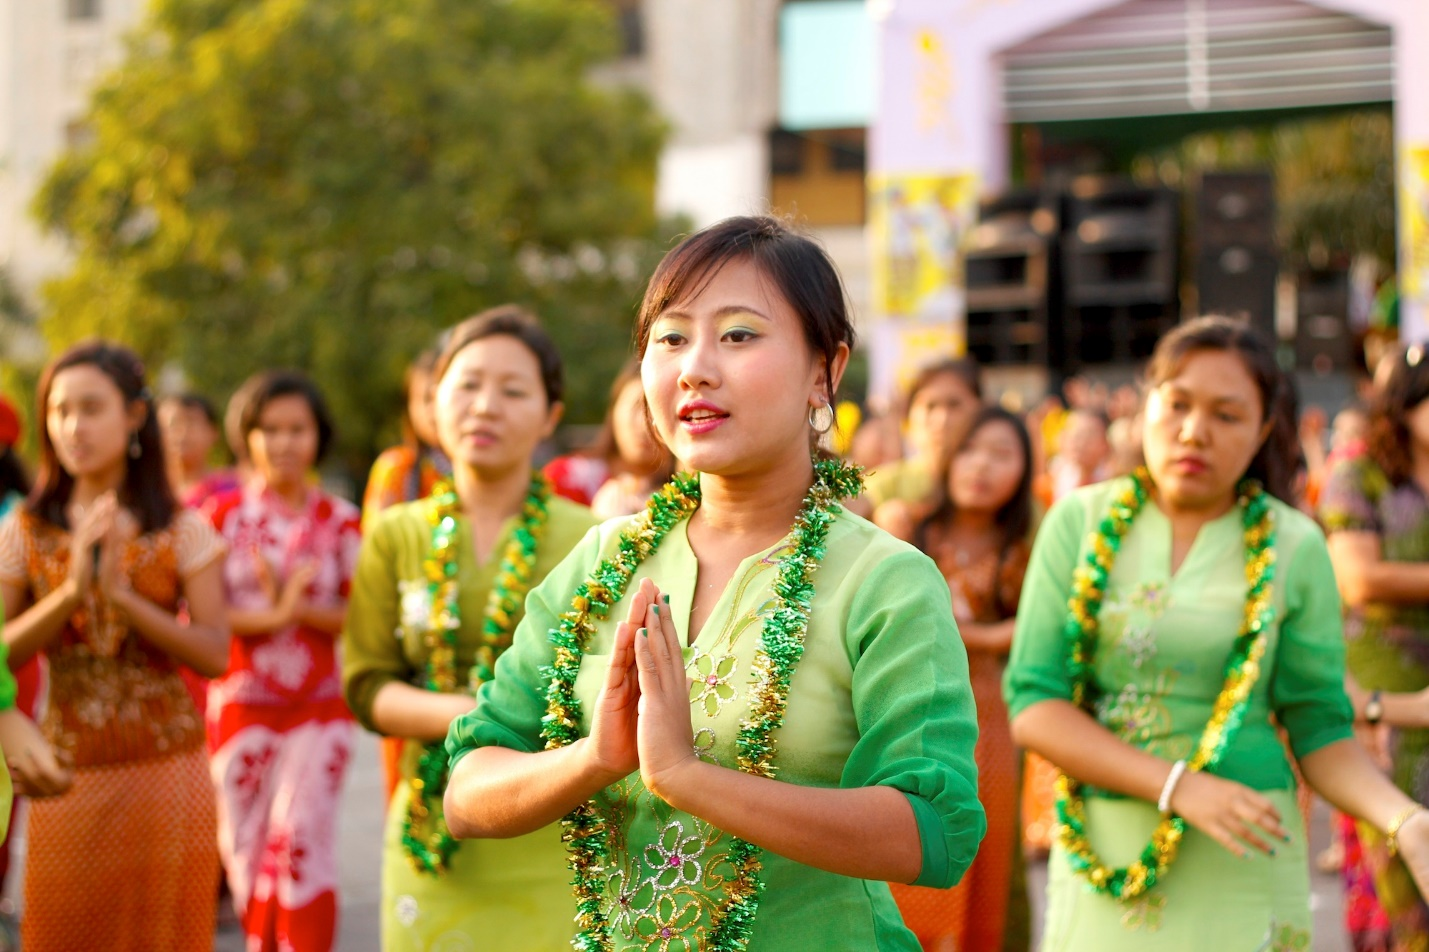 Get to know Myanmar through its traditional festivals